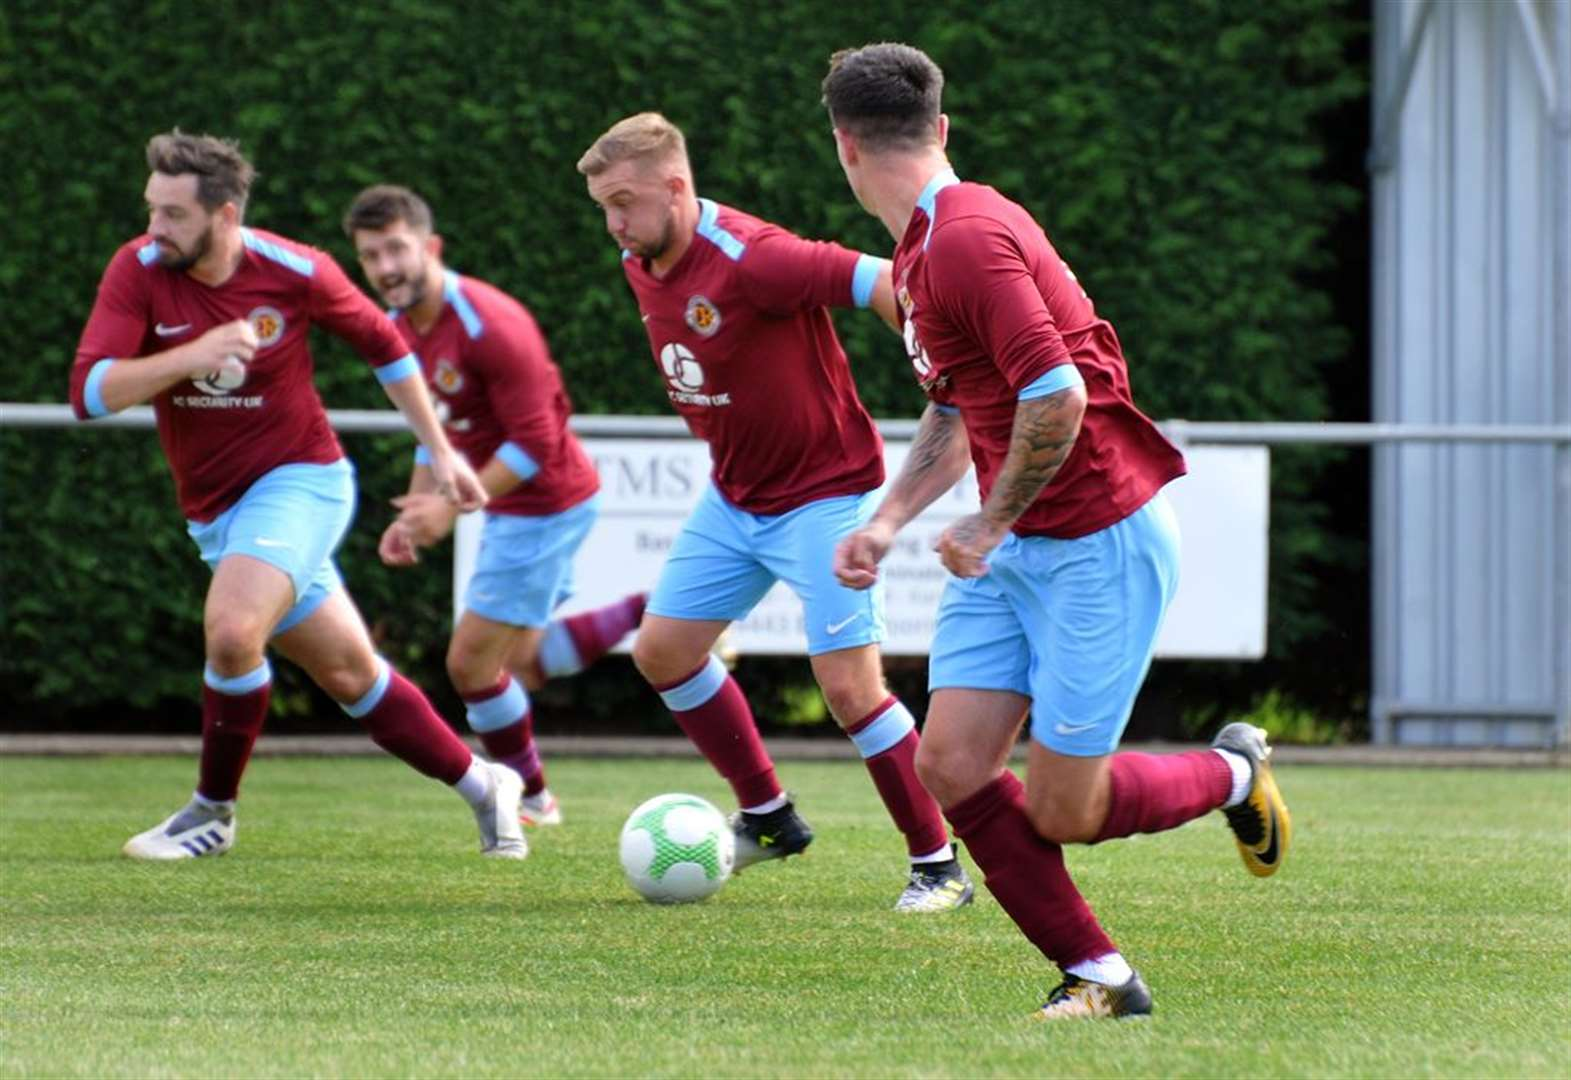 Clarets hope FA Cup exploits can kick-start league campaign